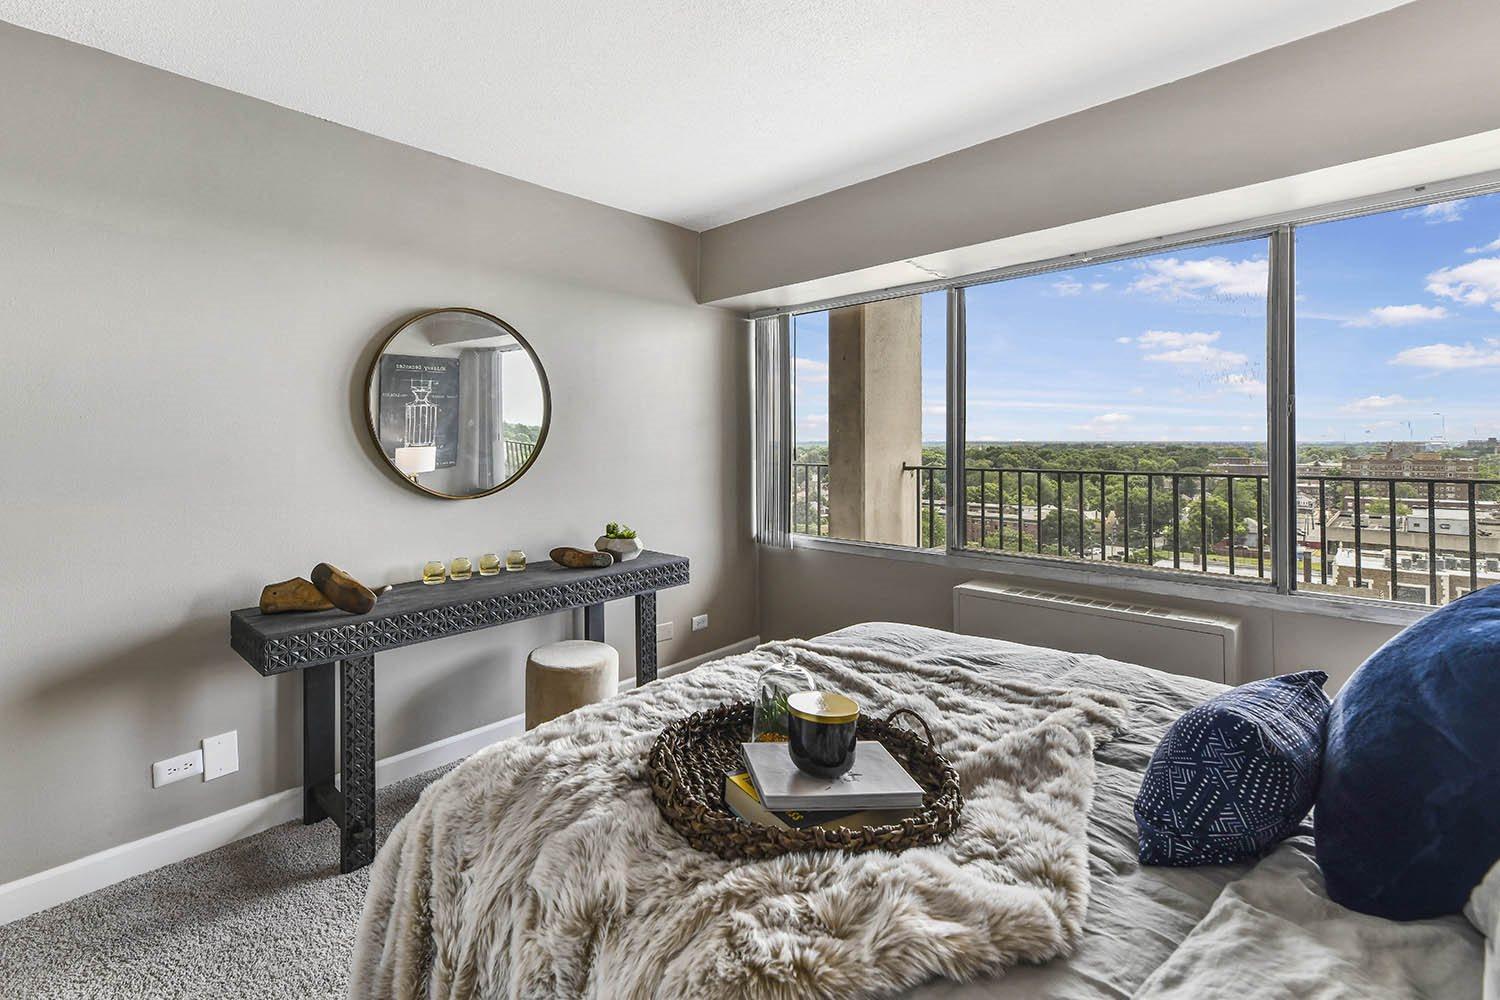 Live in Cozy Bedrooms at CityView on Meridian, Indianapolis, IN,46208